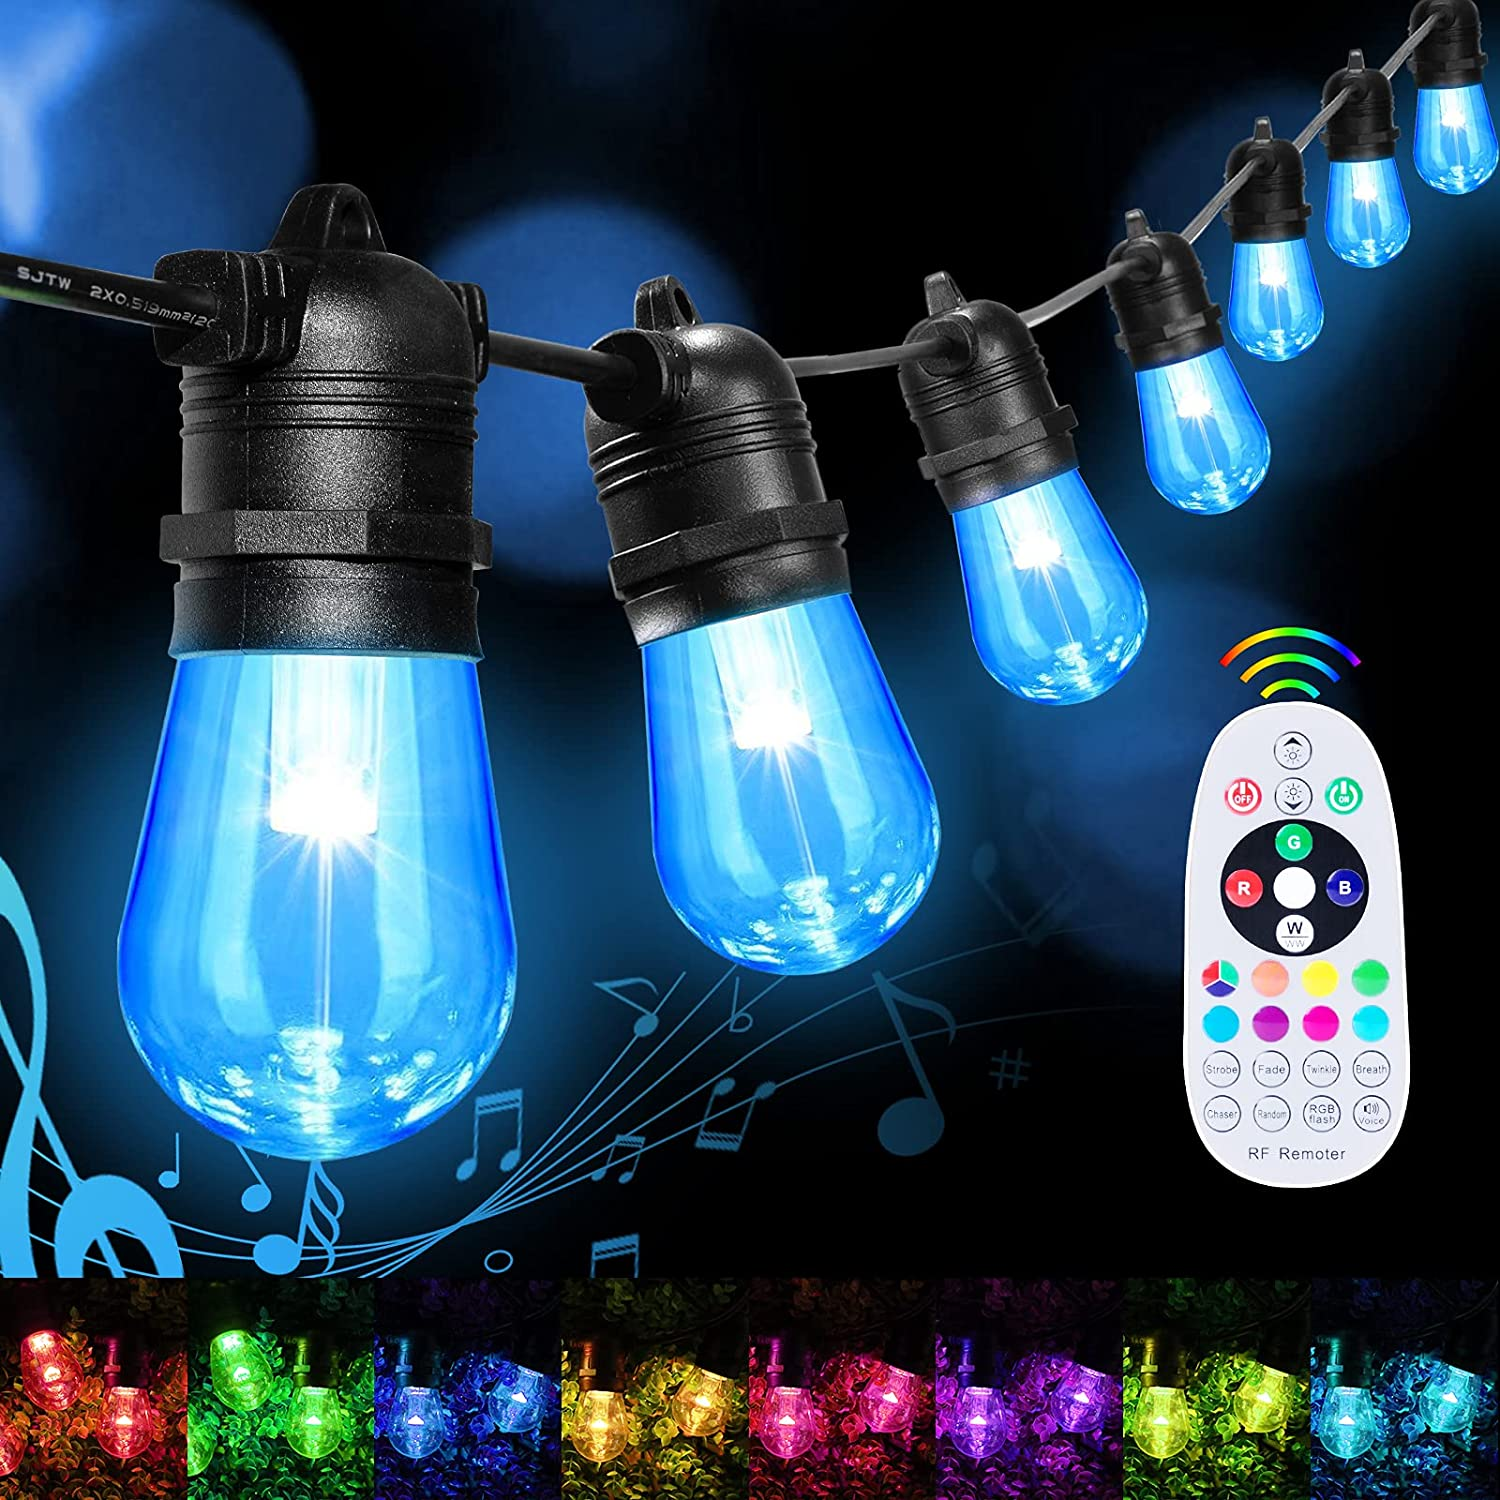 Color Changing String Lights Outdoor/Indoor - 48FT S14 RGBW LED Patio Lights Music Sync with 15 Sockets Waterproof Hanging Lights Plug in with Dimmer Connectable for Backyard Cafe Hotel Party Decor